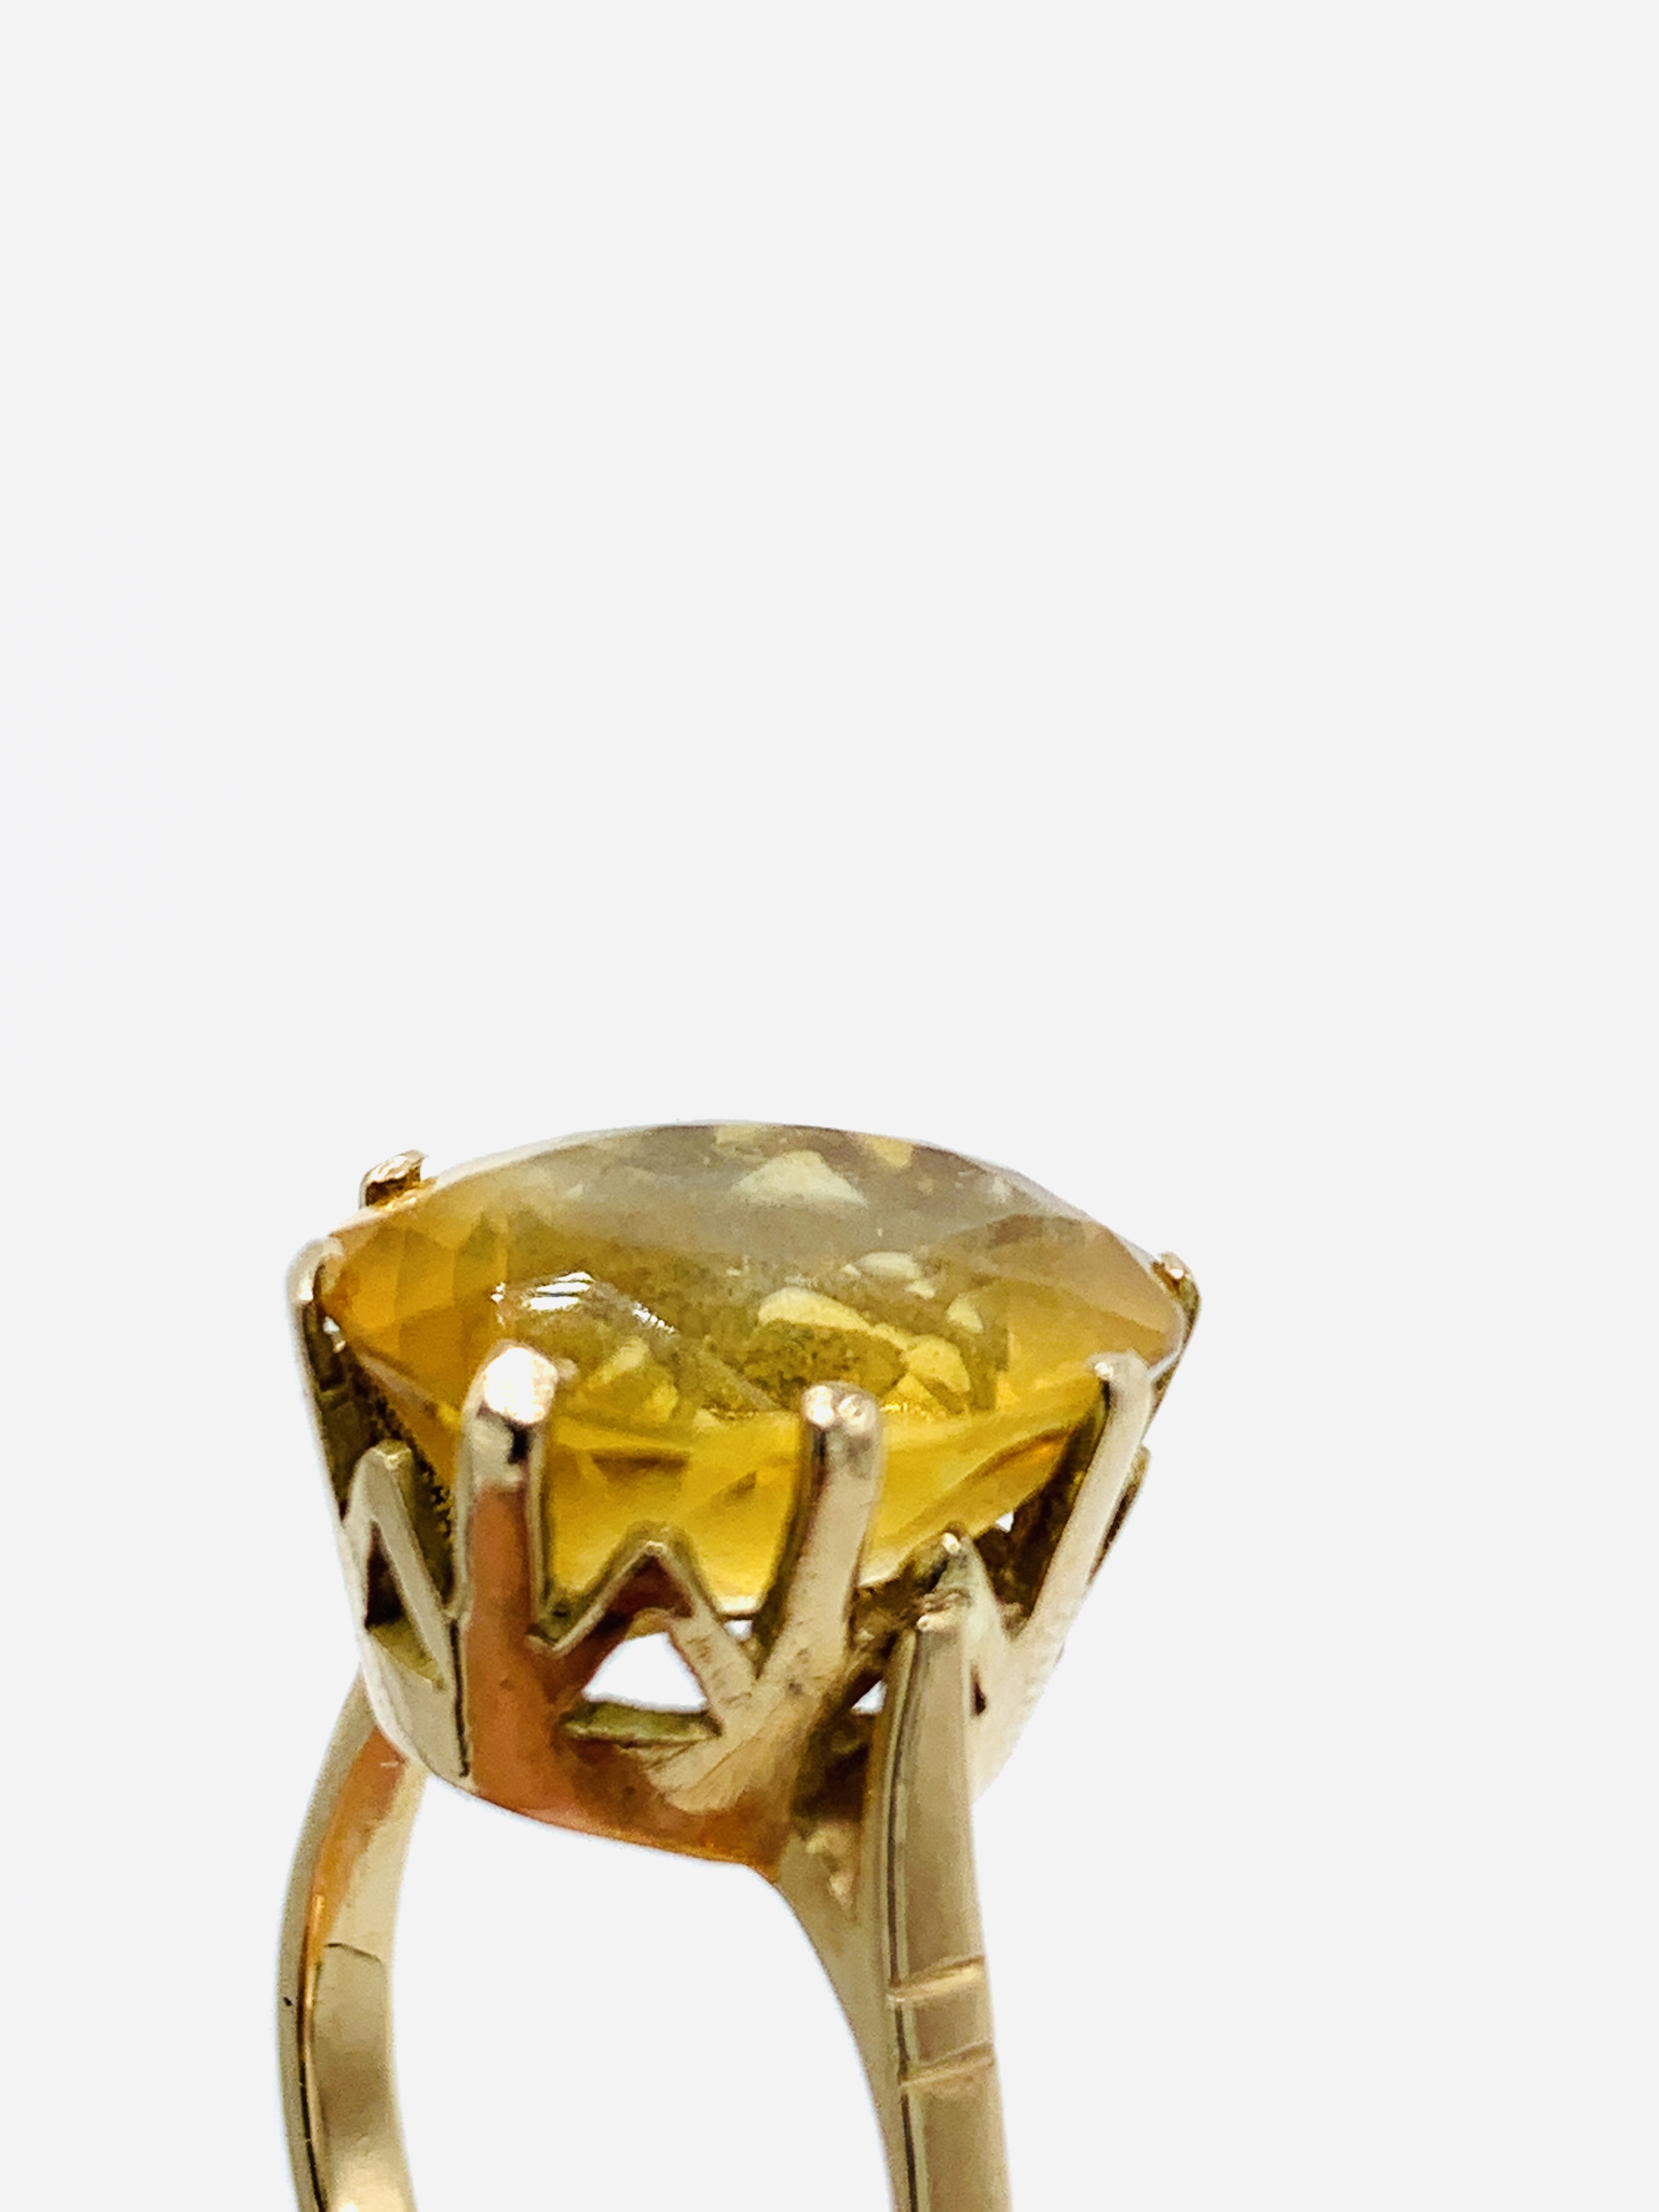 18ct gold and citrine ring and a yellow metal and yellow stone ring - Image 4 of 8